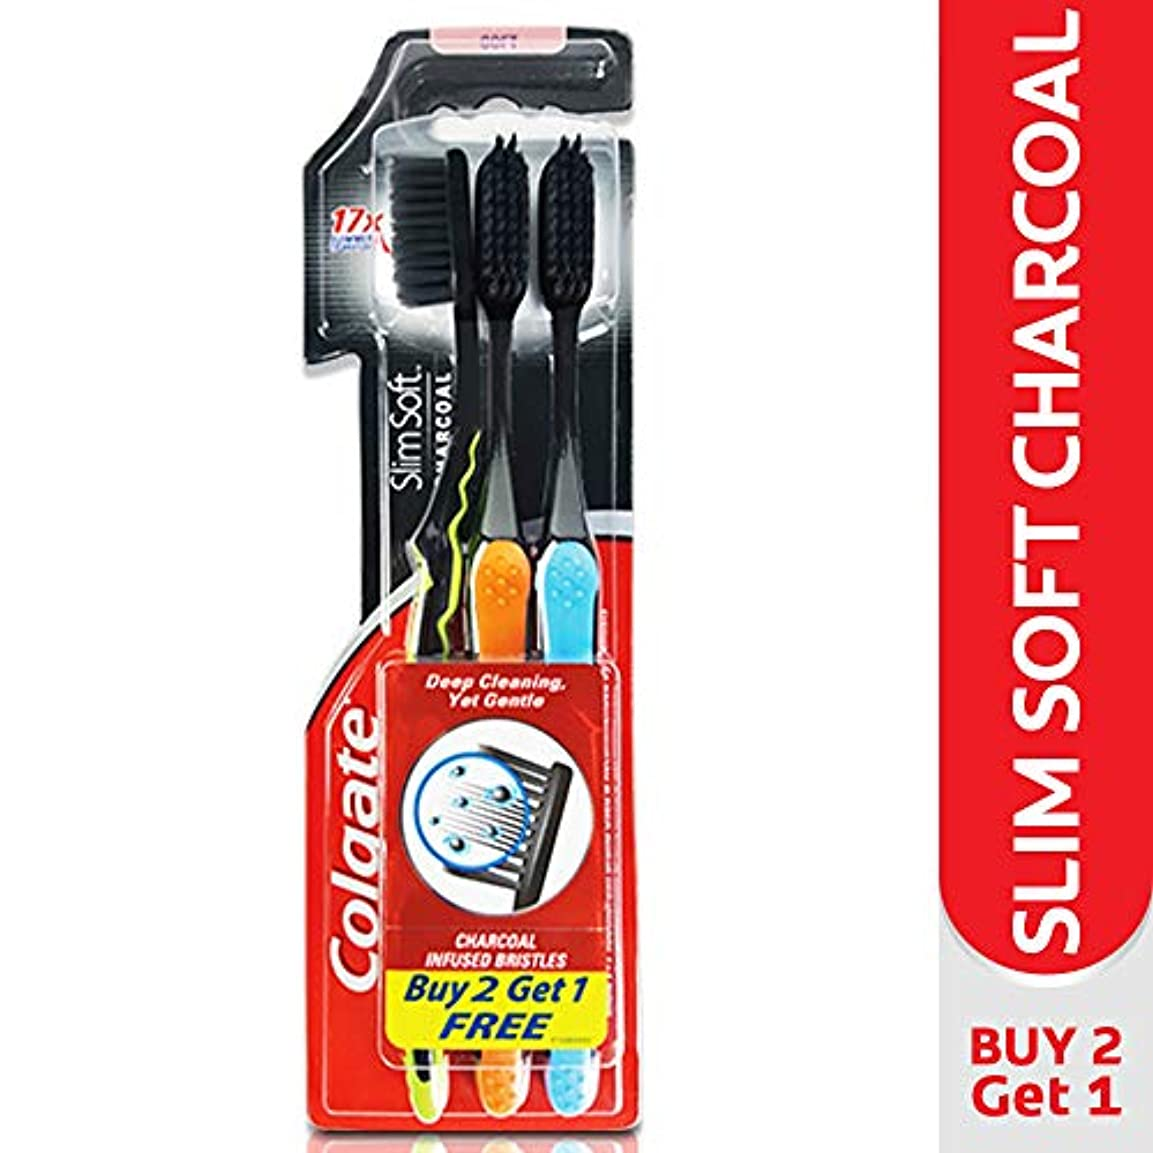 年齢有能な受け入れColgate Slim Soft Charcoal Toothbrush (Pack of 3) 17x Slimmer Soft Tip Bristles (Ship From India)